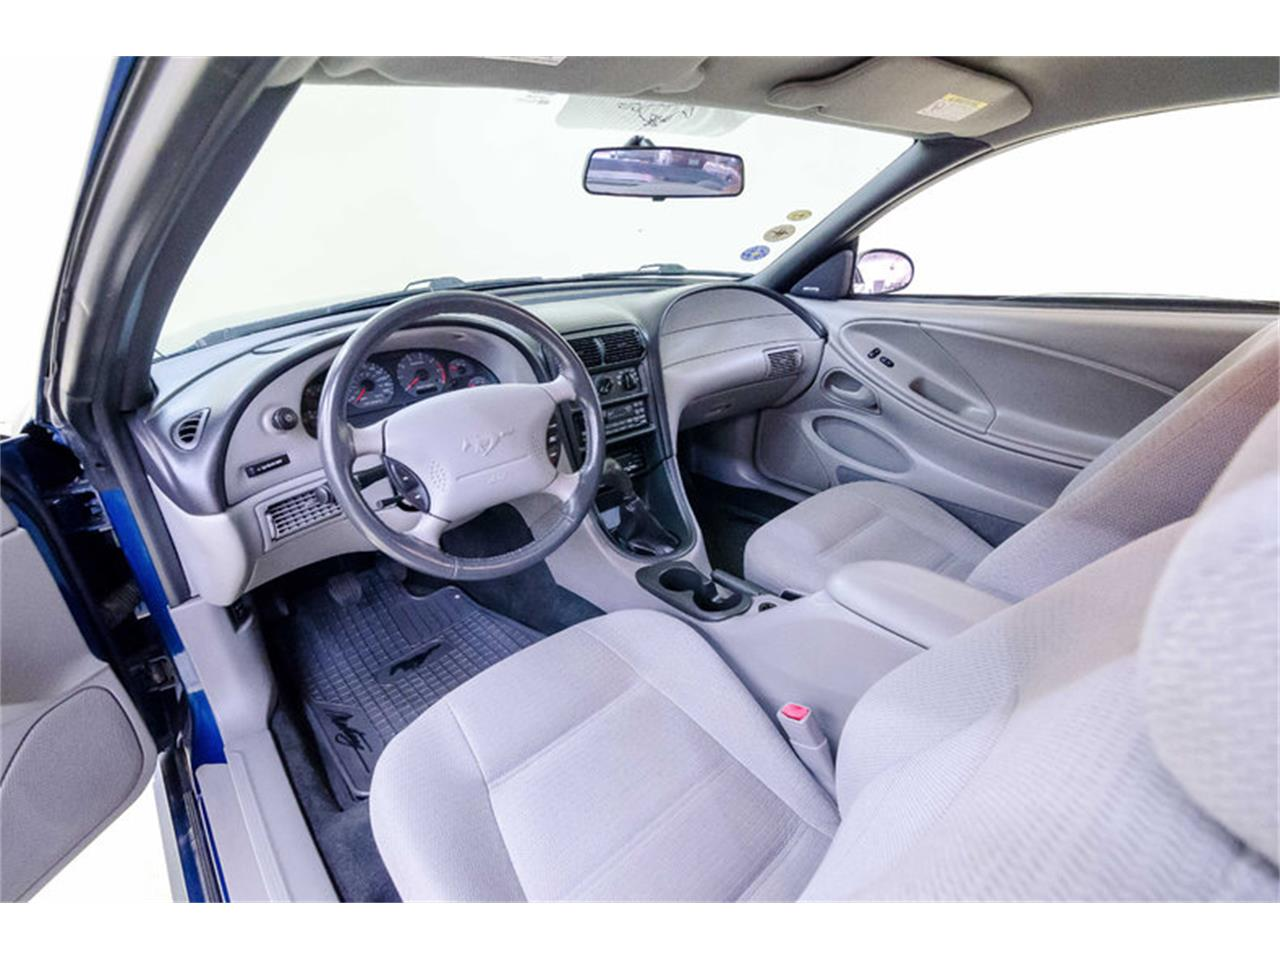 Large Picture of 2000 Ford Mustang - $7,995.00 - LB01